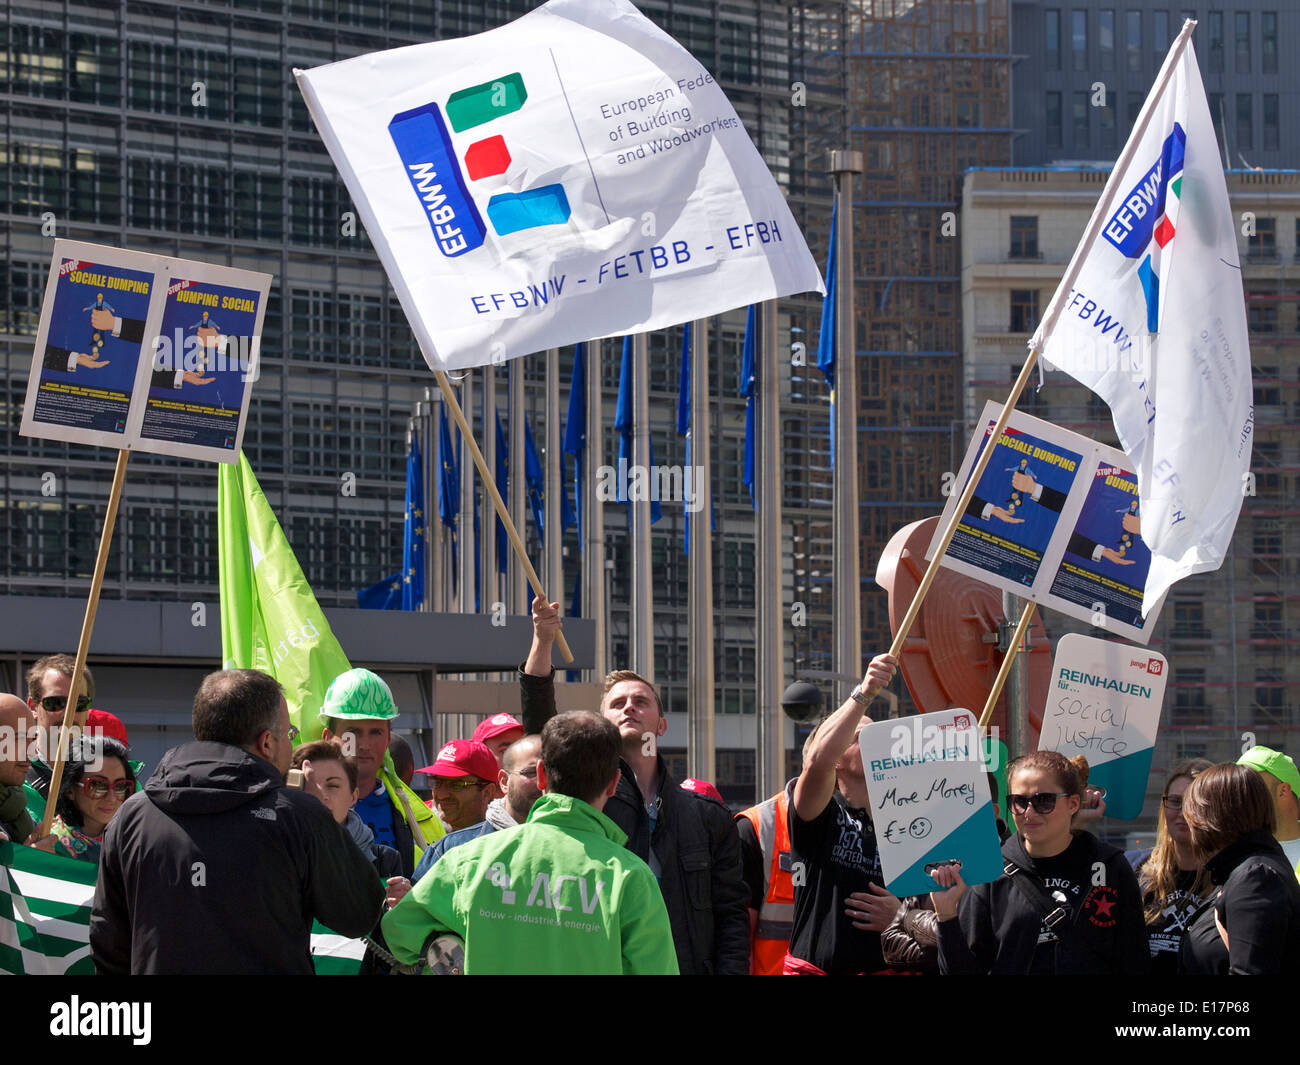 Workers protesting at European Commission in Brussels, Belgium - Stock Image